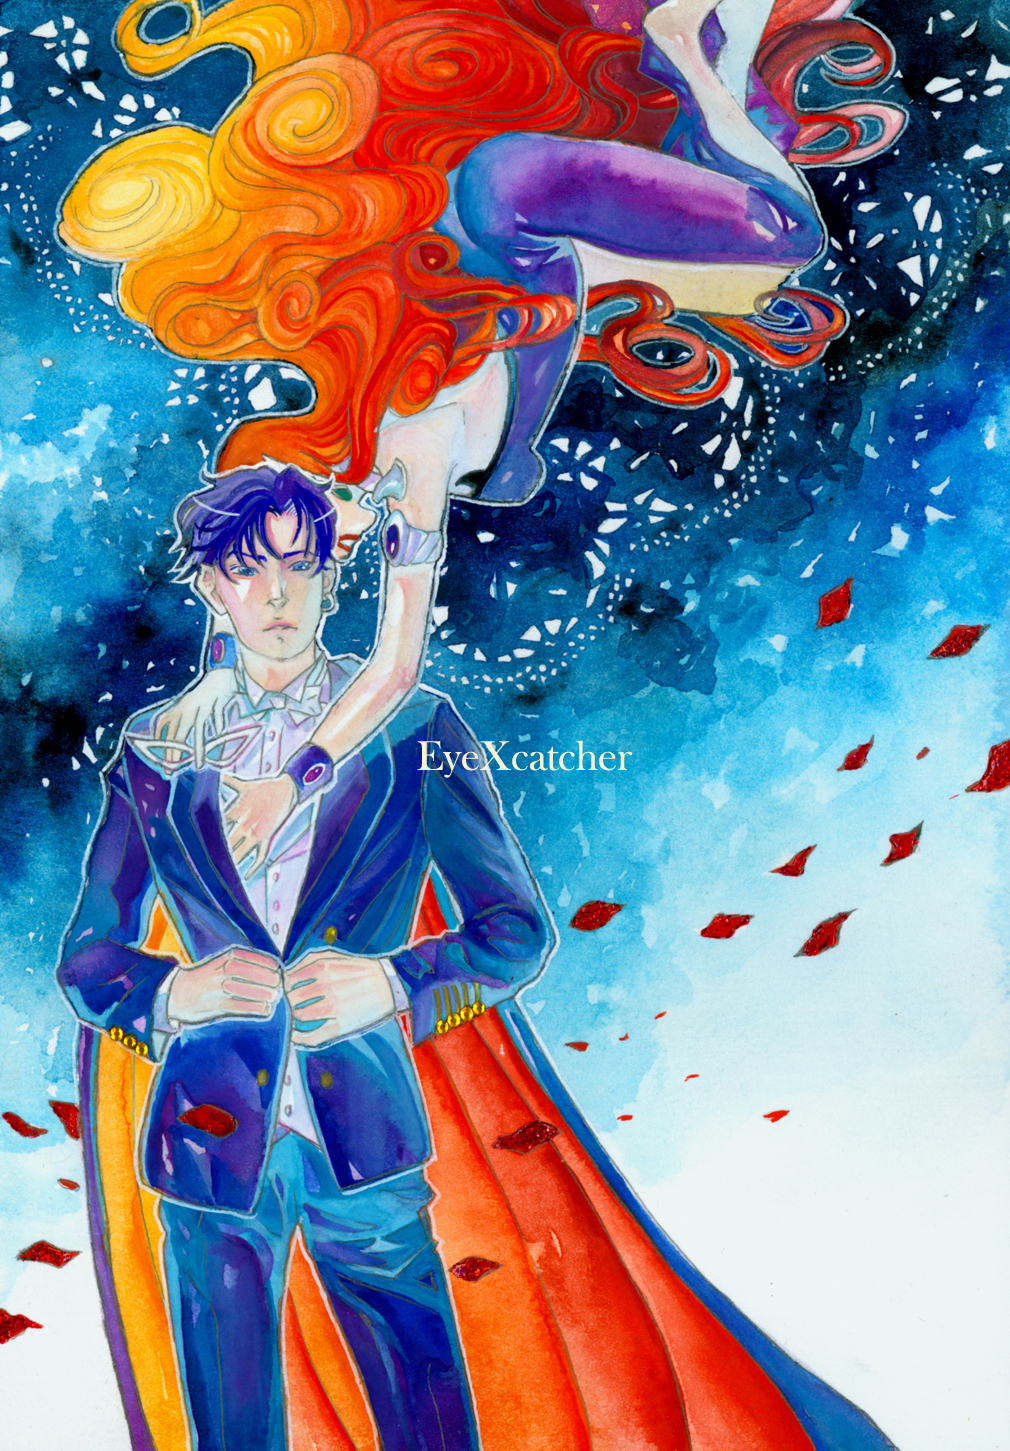 Tuxedo Mask and Perilia Fanart by EyeXcatcher by Eye-X-catcher